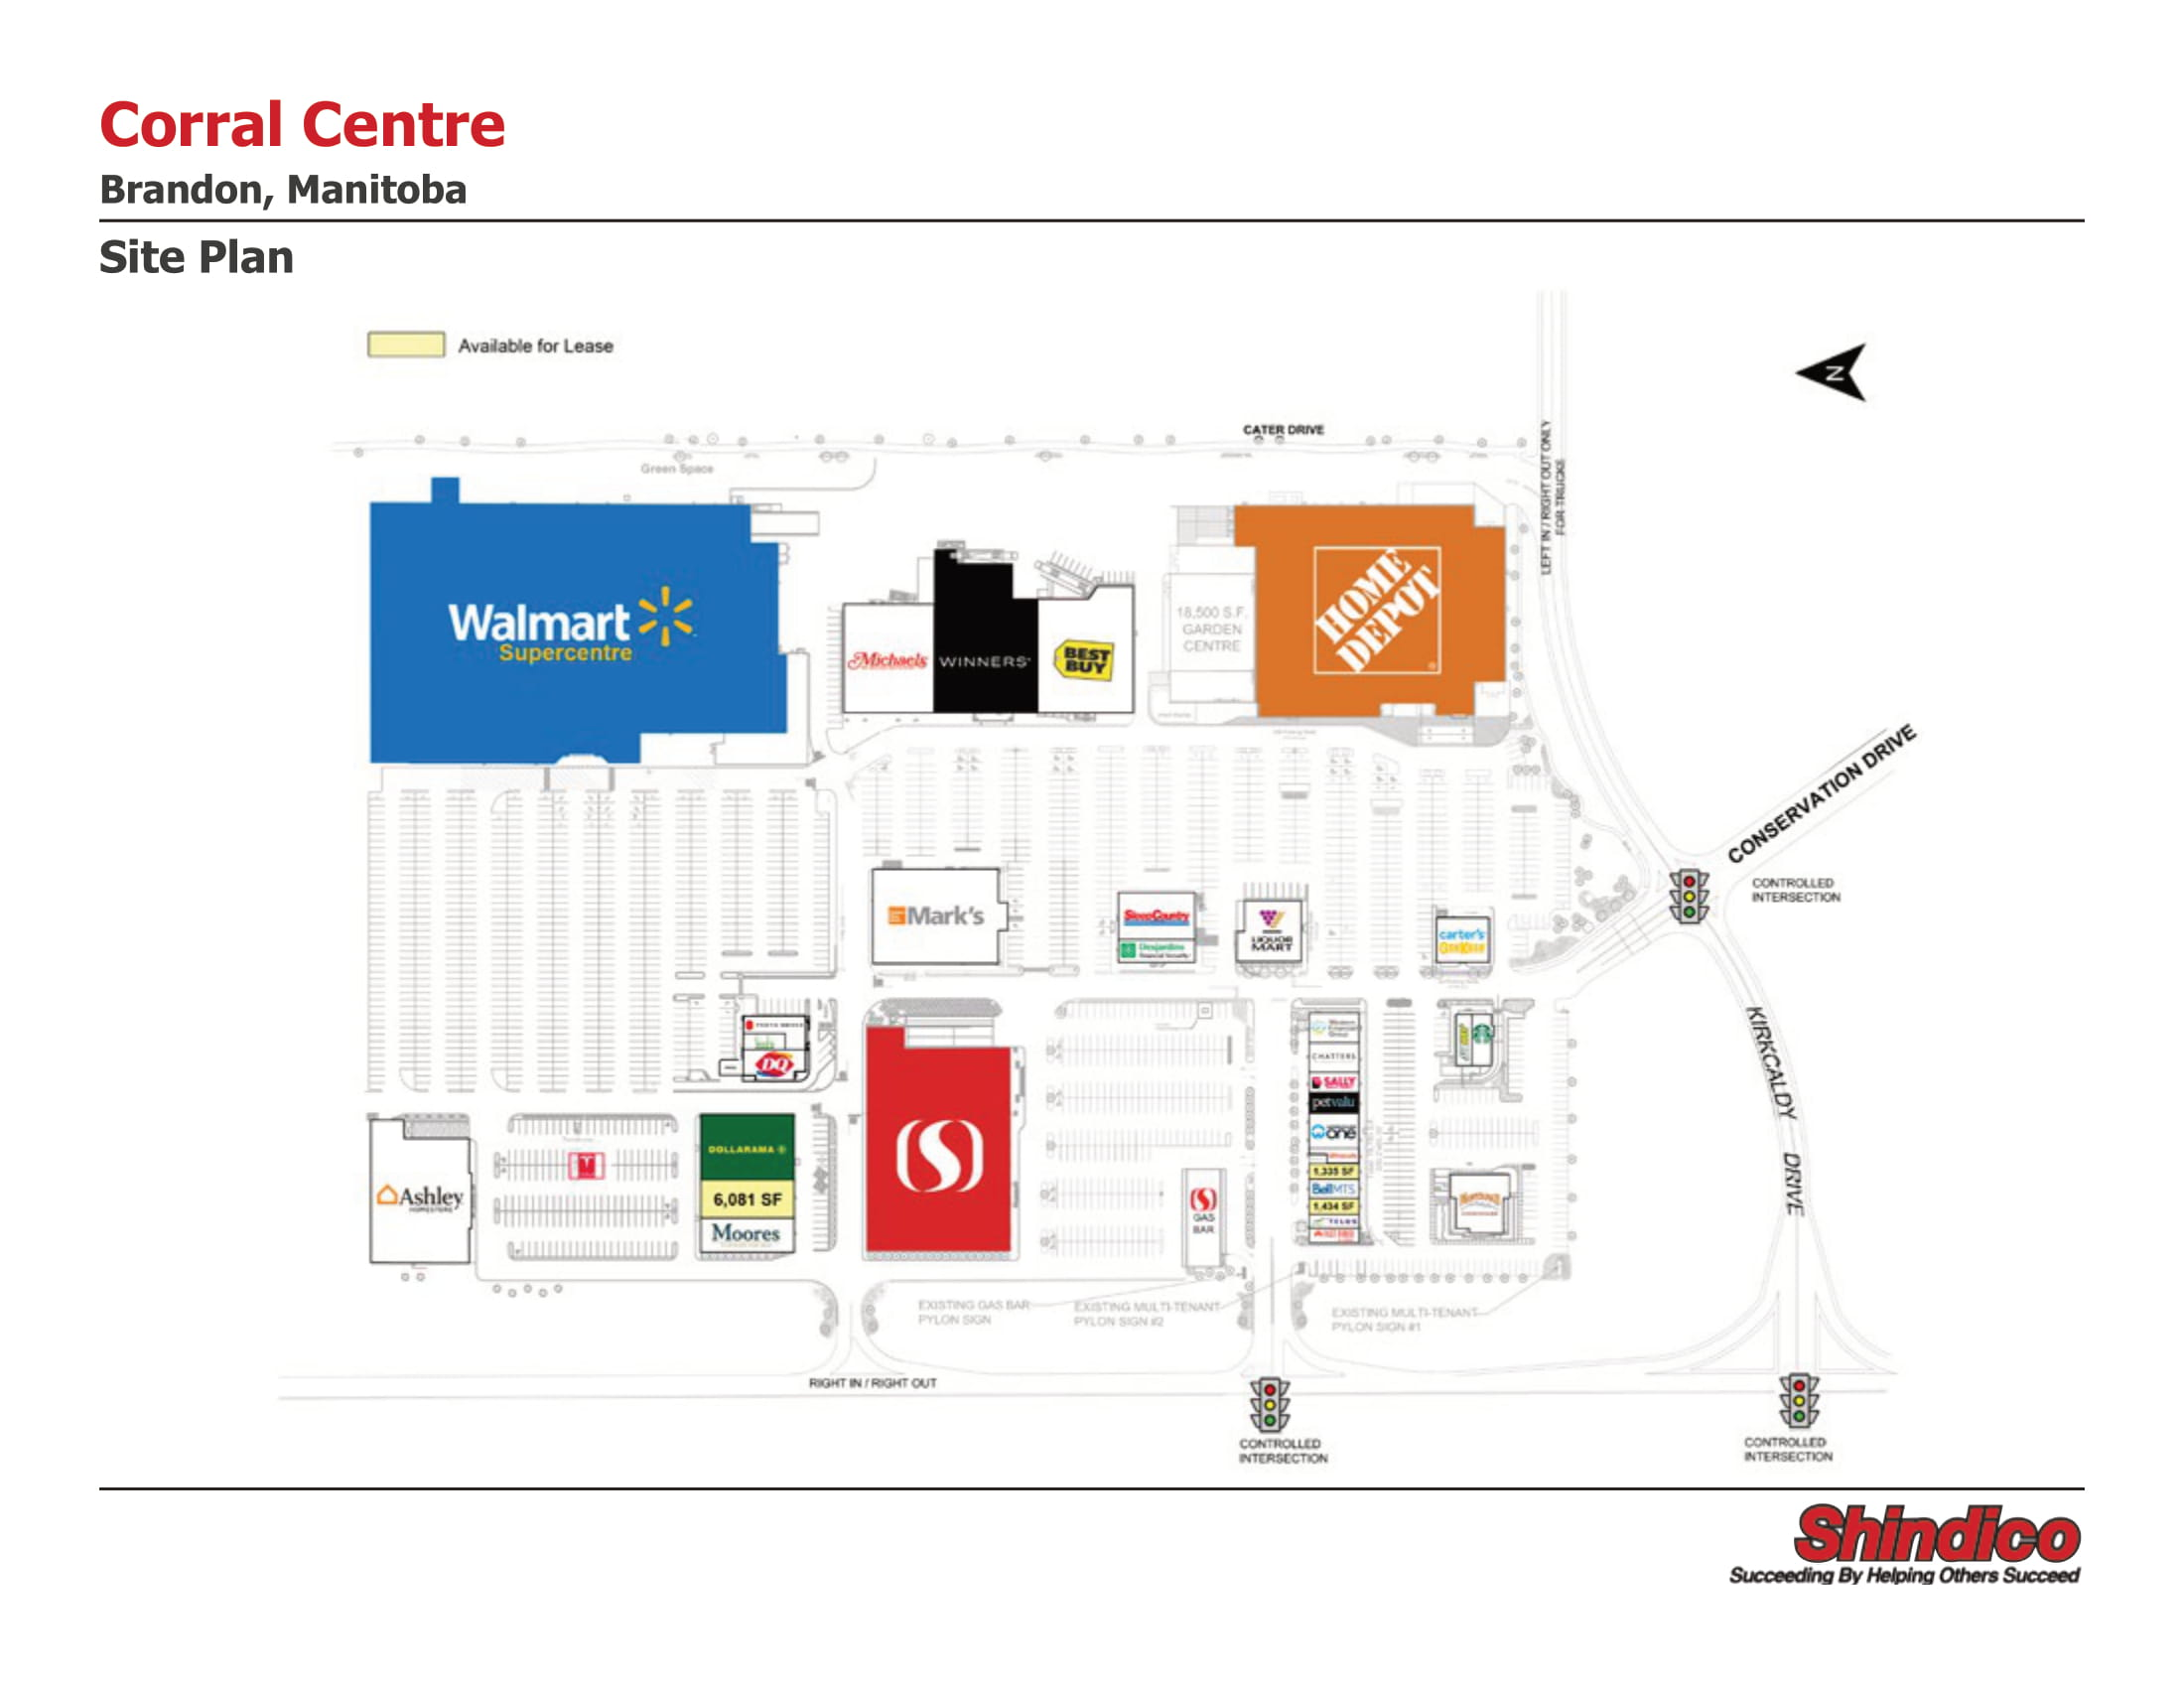 Gps Phone Locator >> Corral Centre in Brandon, Manitoba - 43 Stores, Hours, Location | Shopping Canada